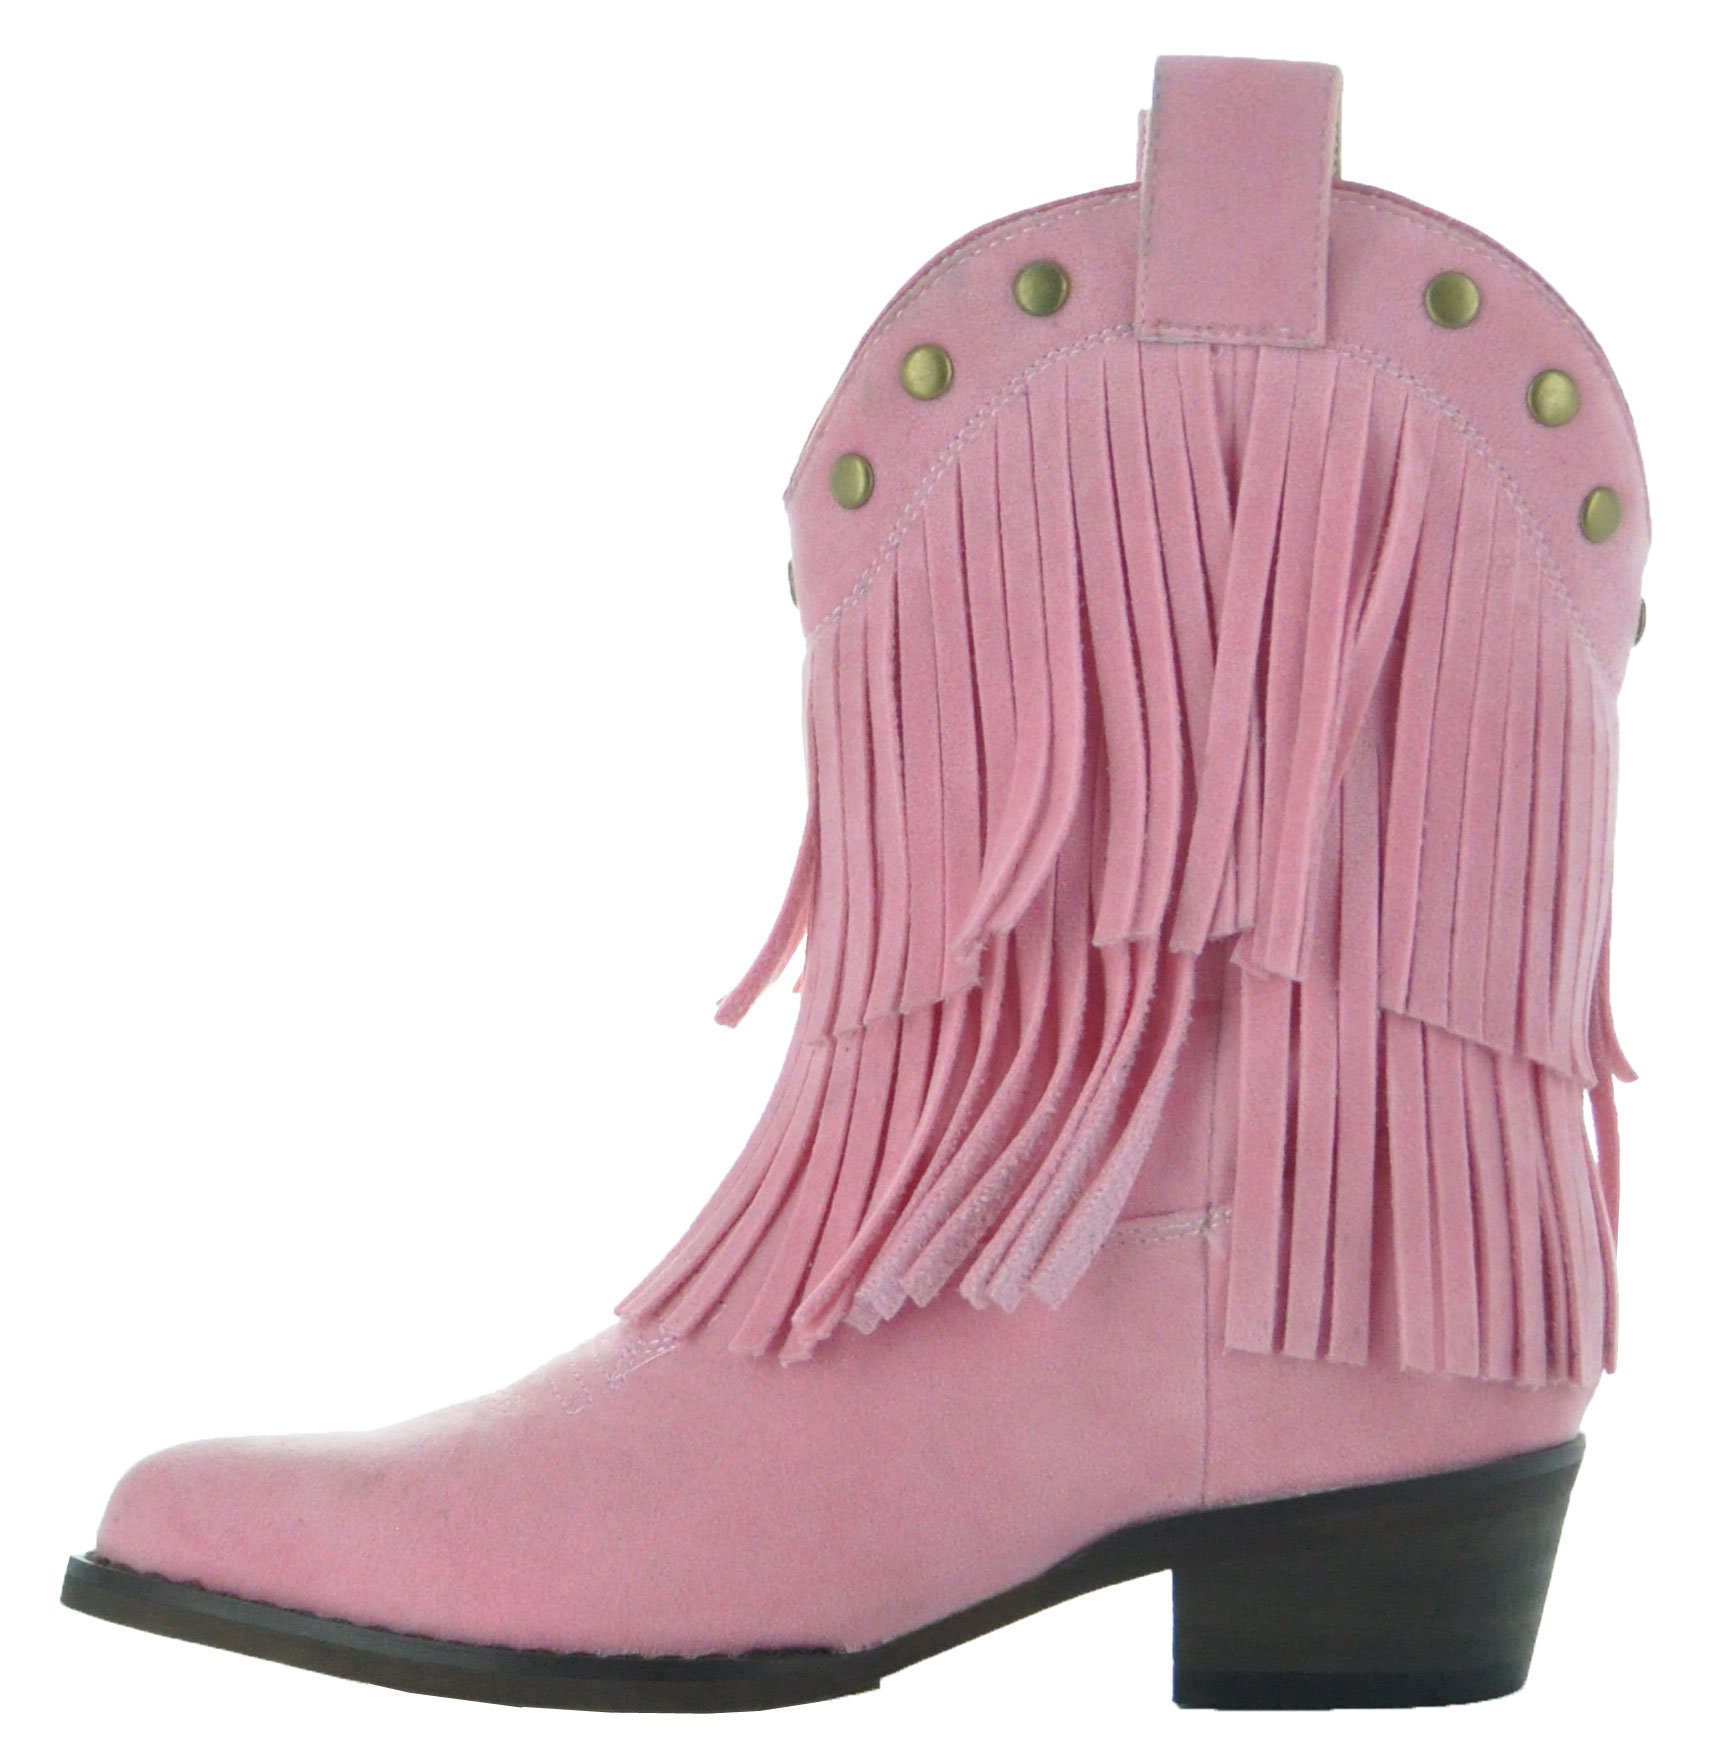 Little Kids Fun Fringe Brown Cowgirl Boots by Country Love Boots (11.5 Little Kid, Pink) by Country Love Boots (Image #3)